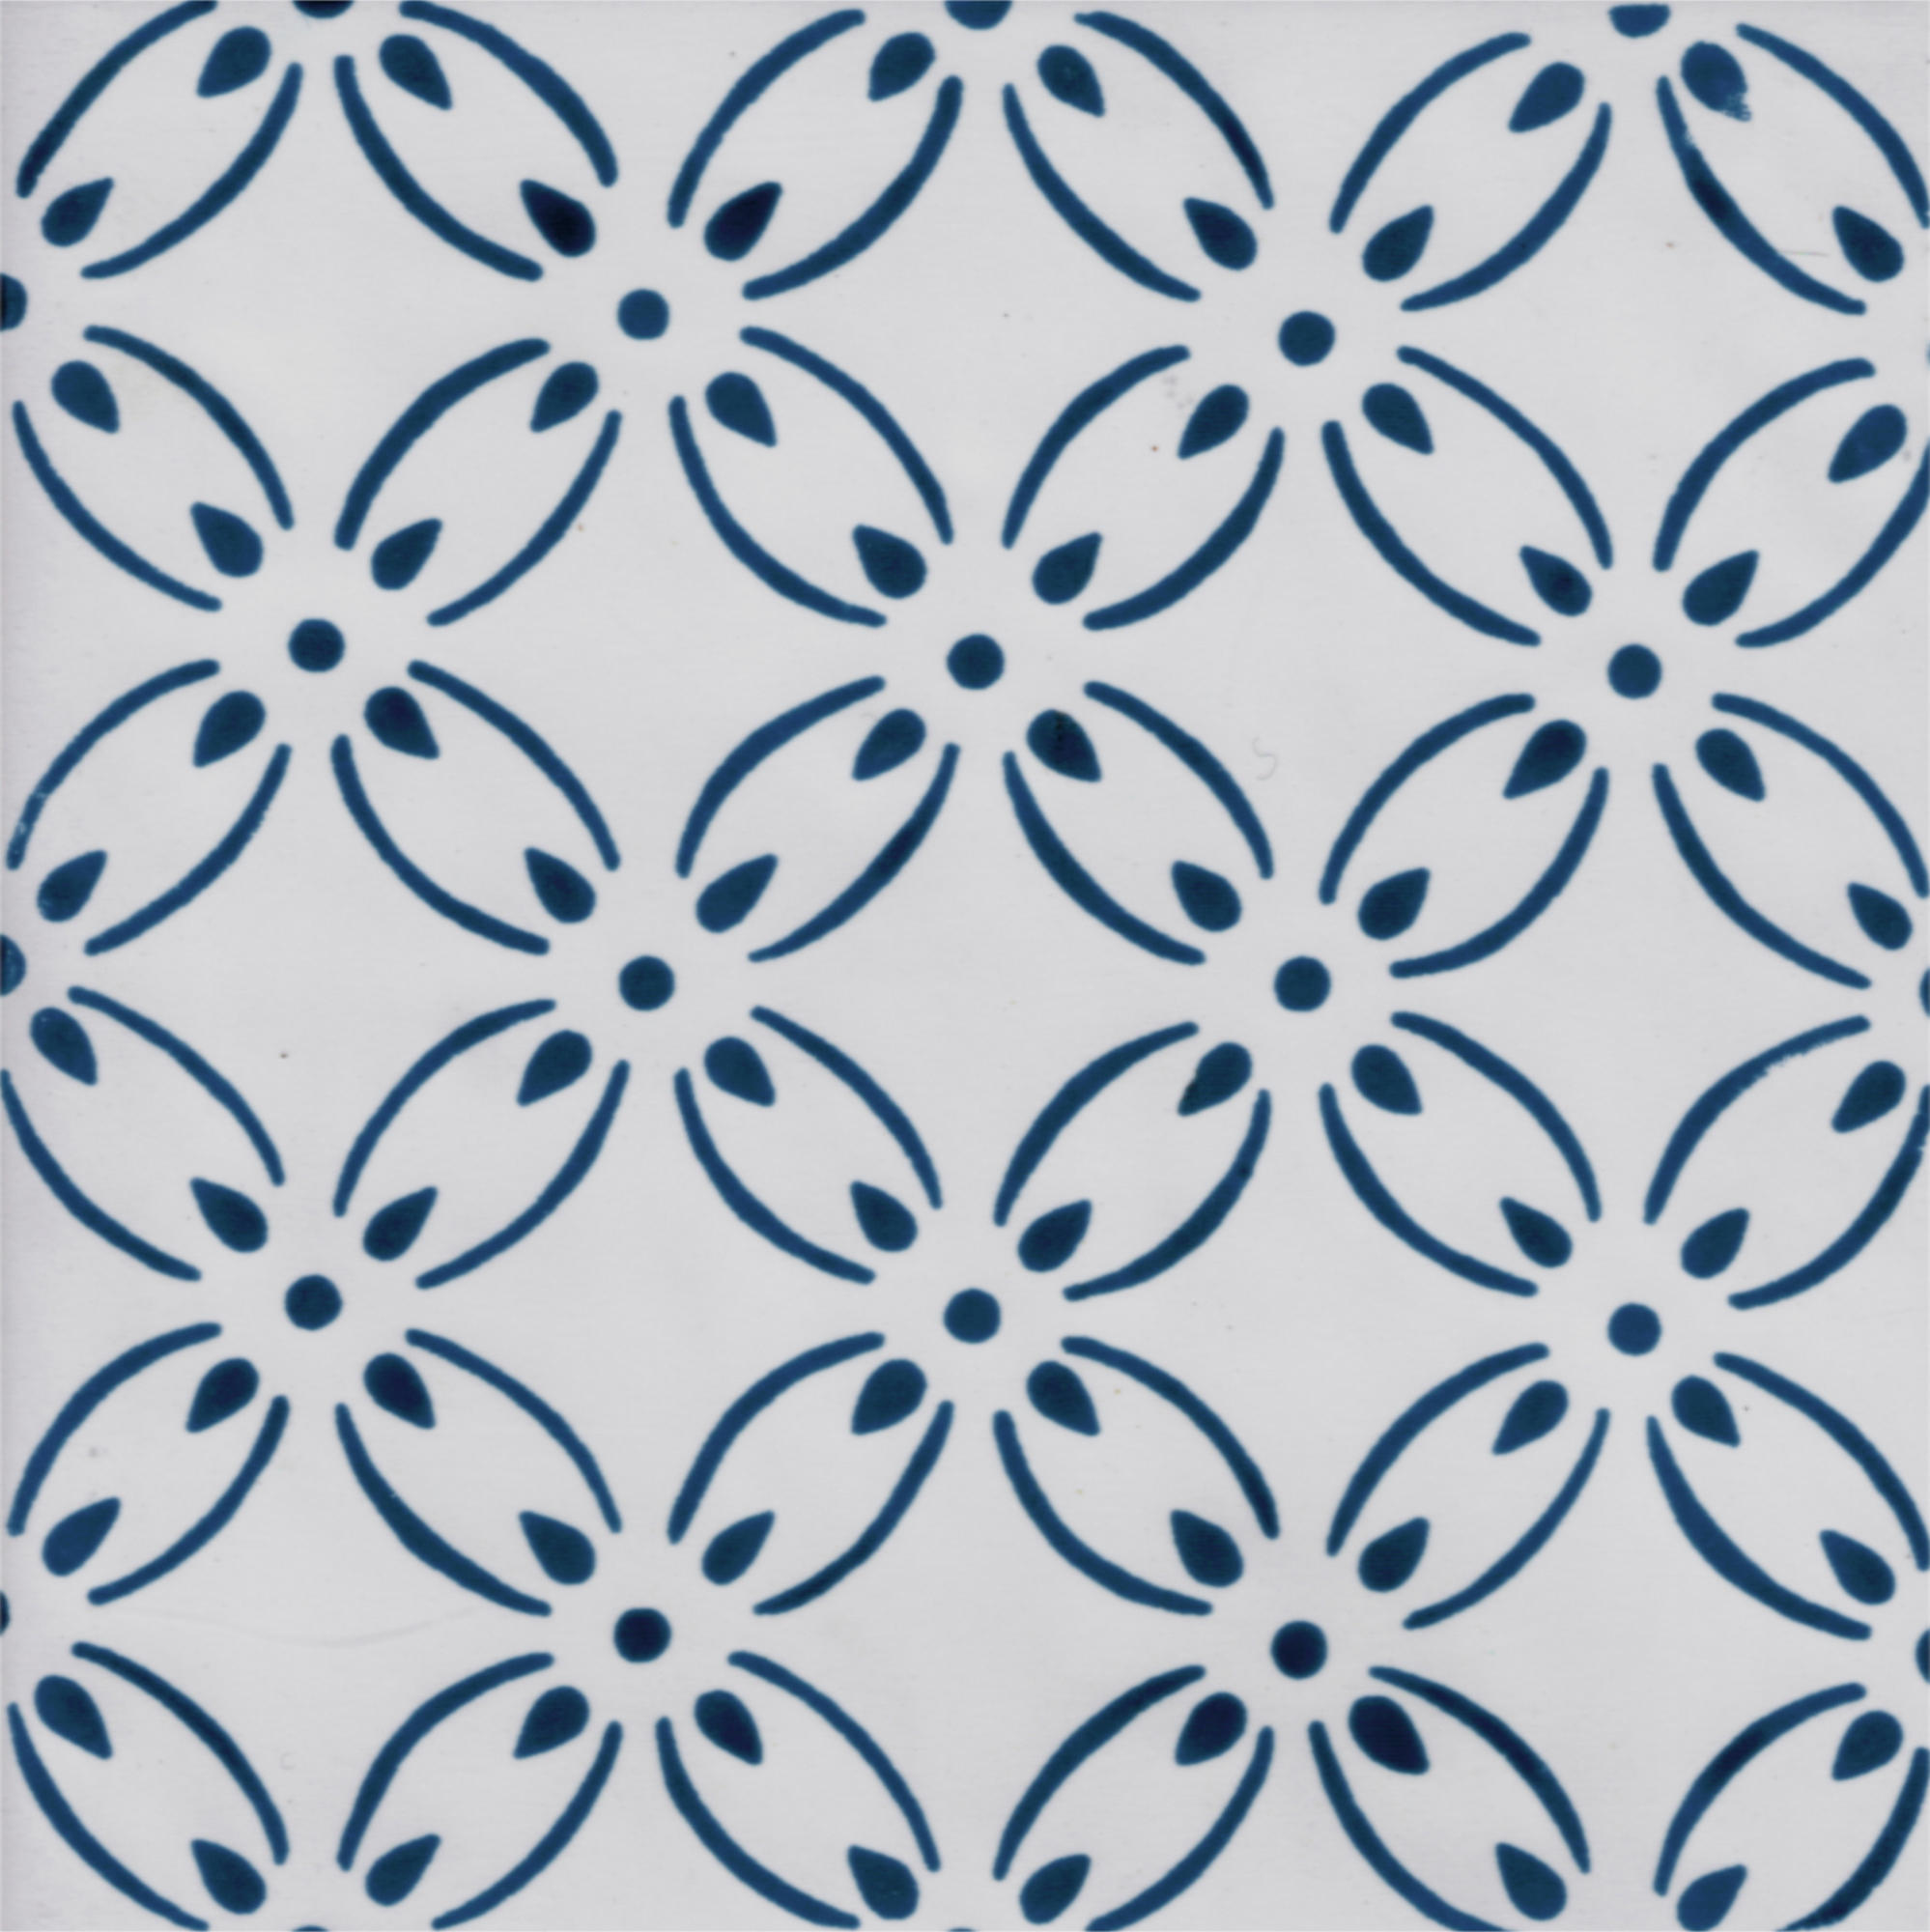 LR CO 11995 SOTTILE - Ceramic tiles from La Riggiola | Architonic